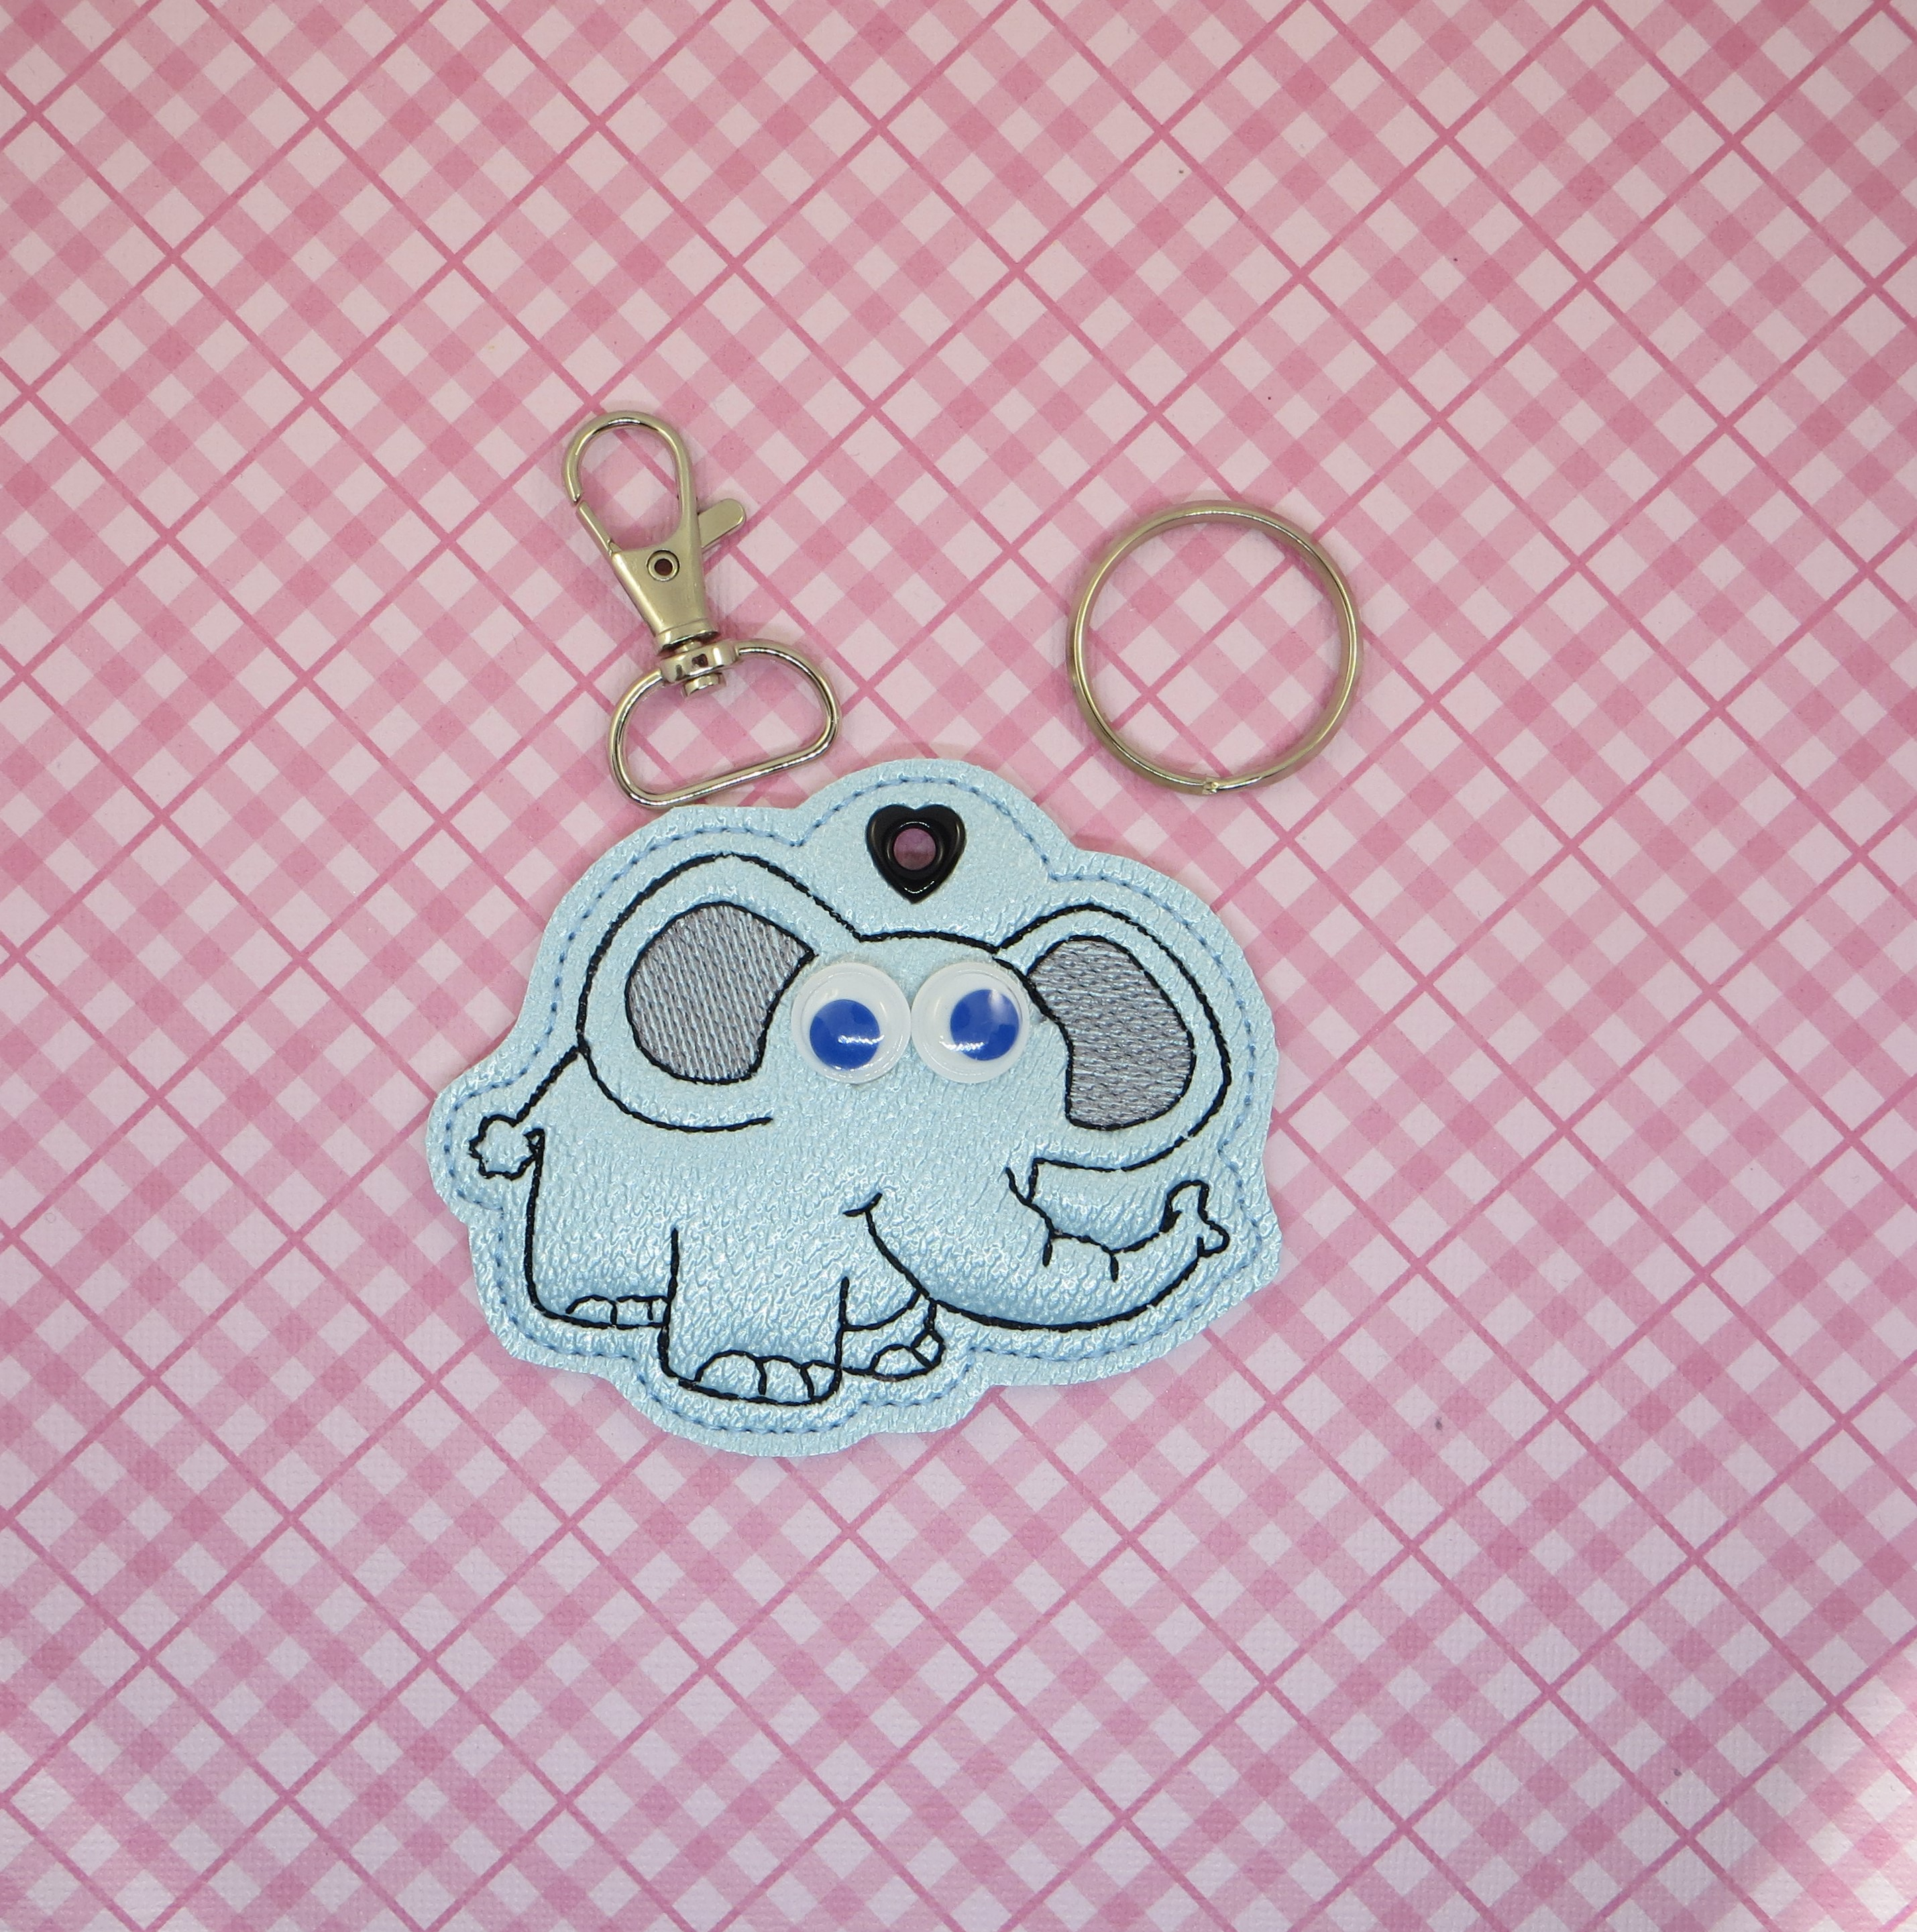 Googley Eyes Elephant Snaptab / Keyfob Embroidery Design